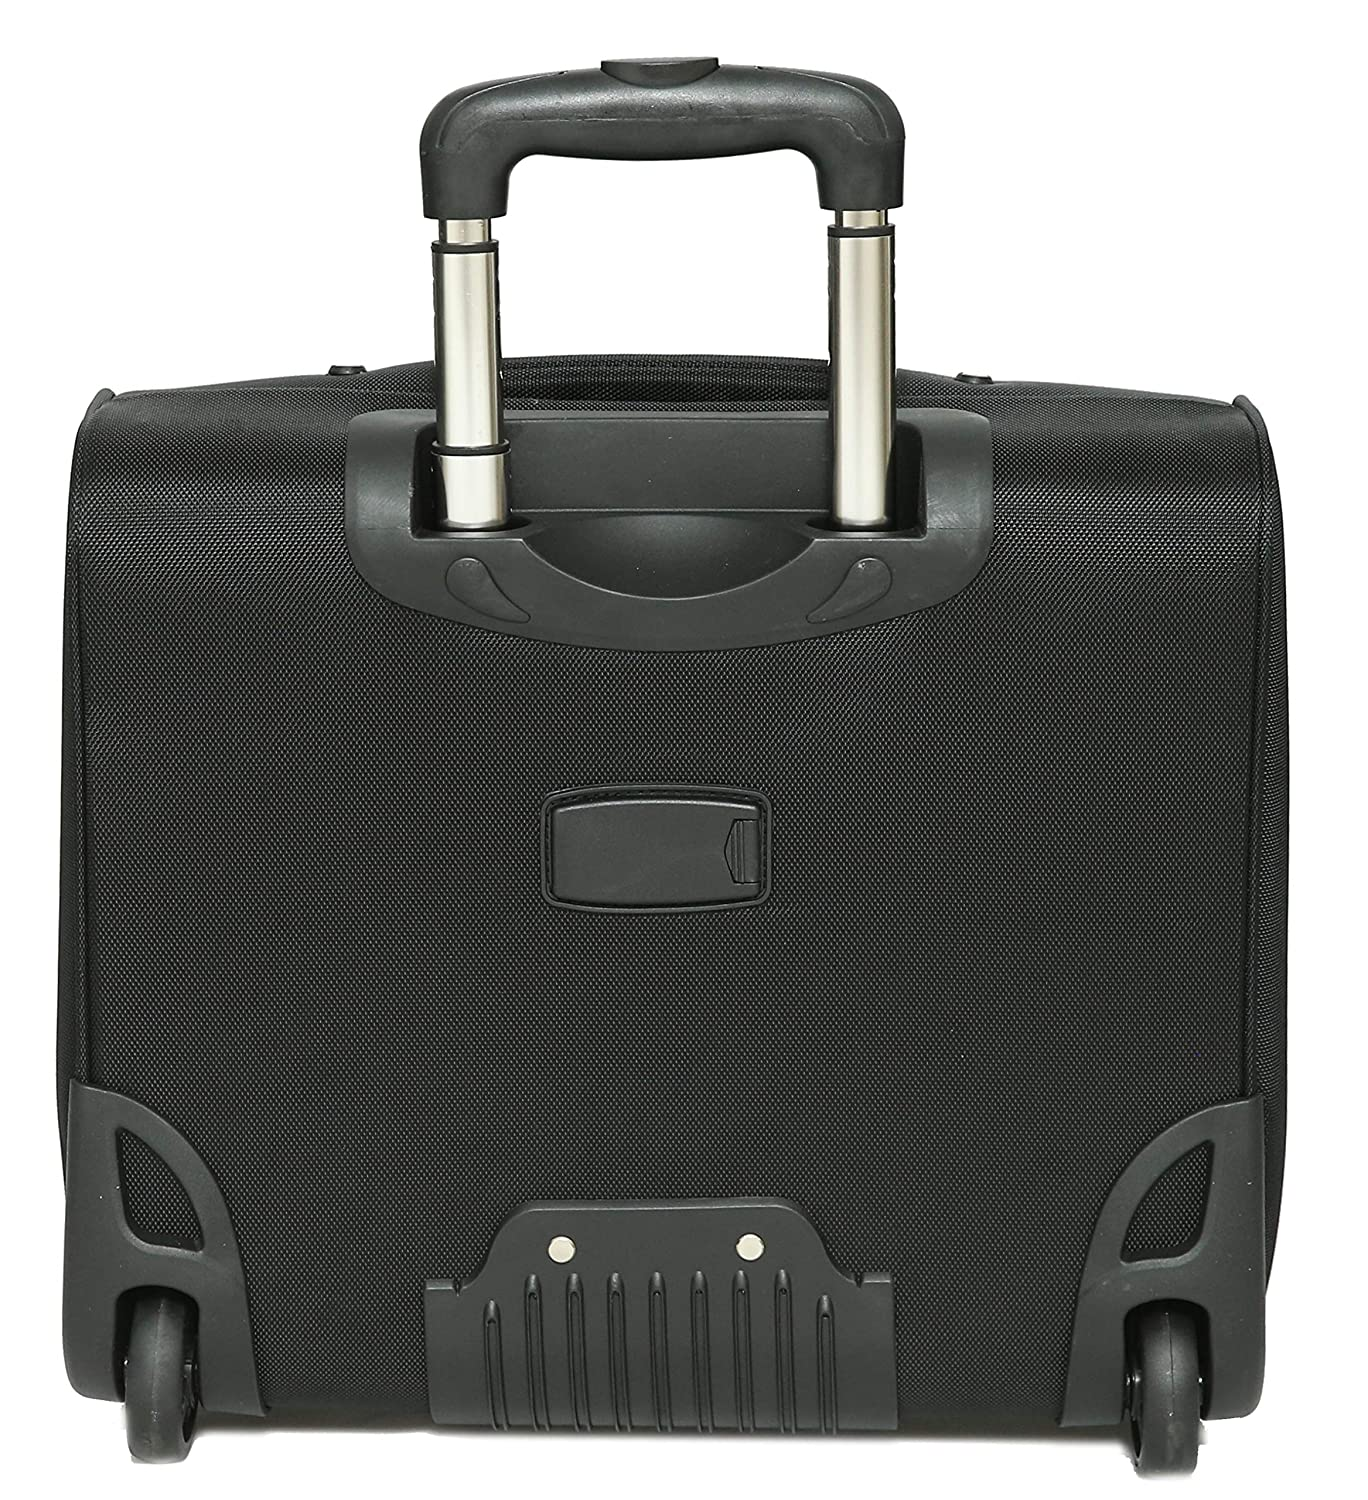 "New 17/"" 4 Wheel Laptop Bag Trolley Cabin Business Briefcase Travel Luggage 4116"